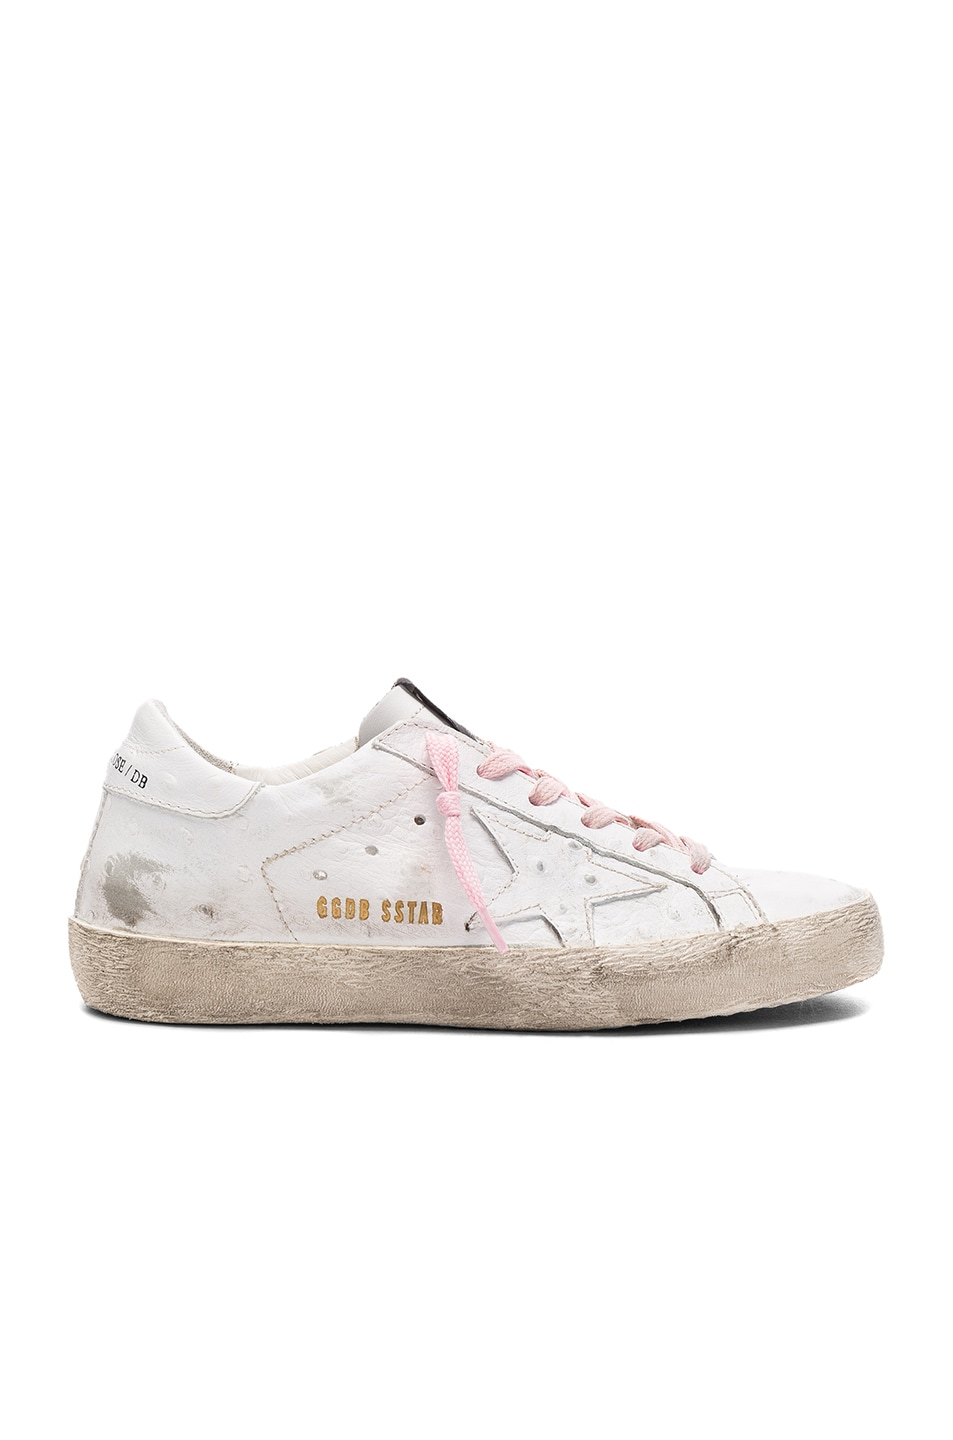 Image 1 of Golden Goose Leather Superstar Low Sneakers in White & Pink